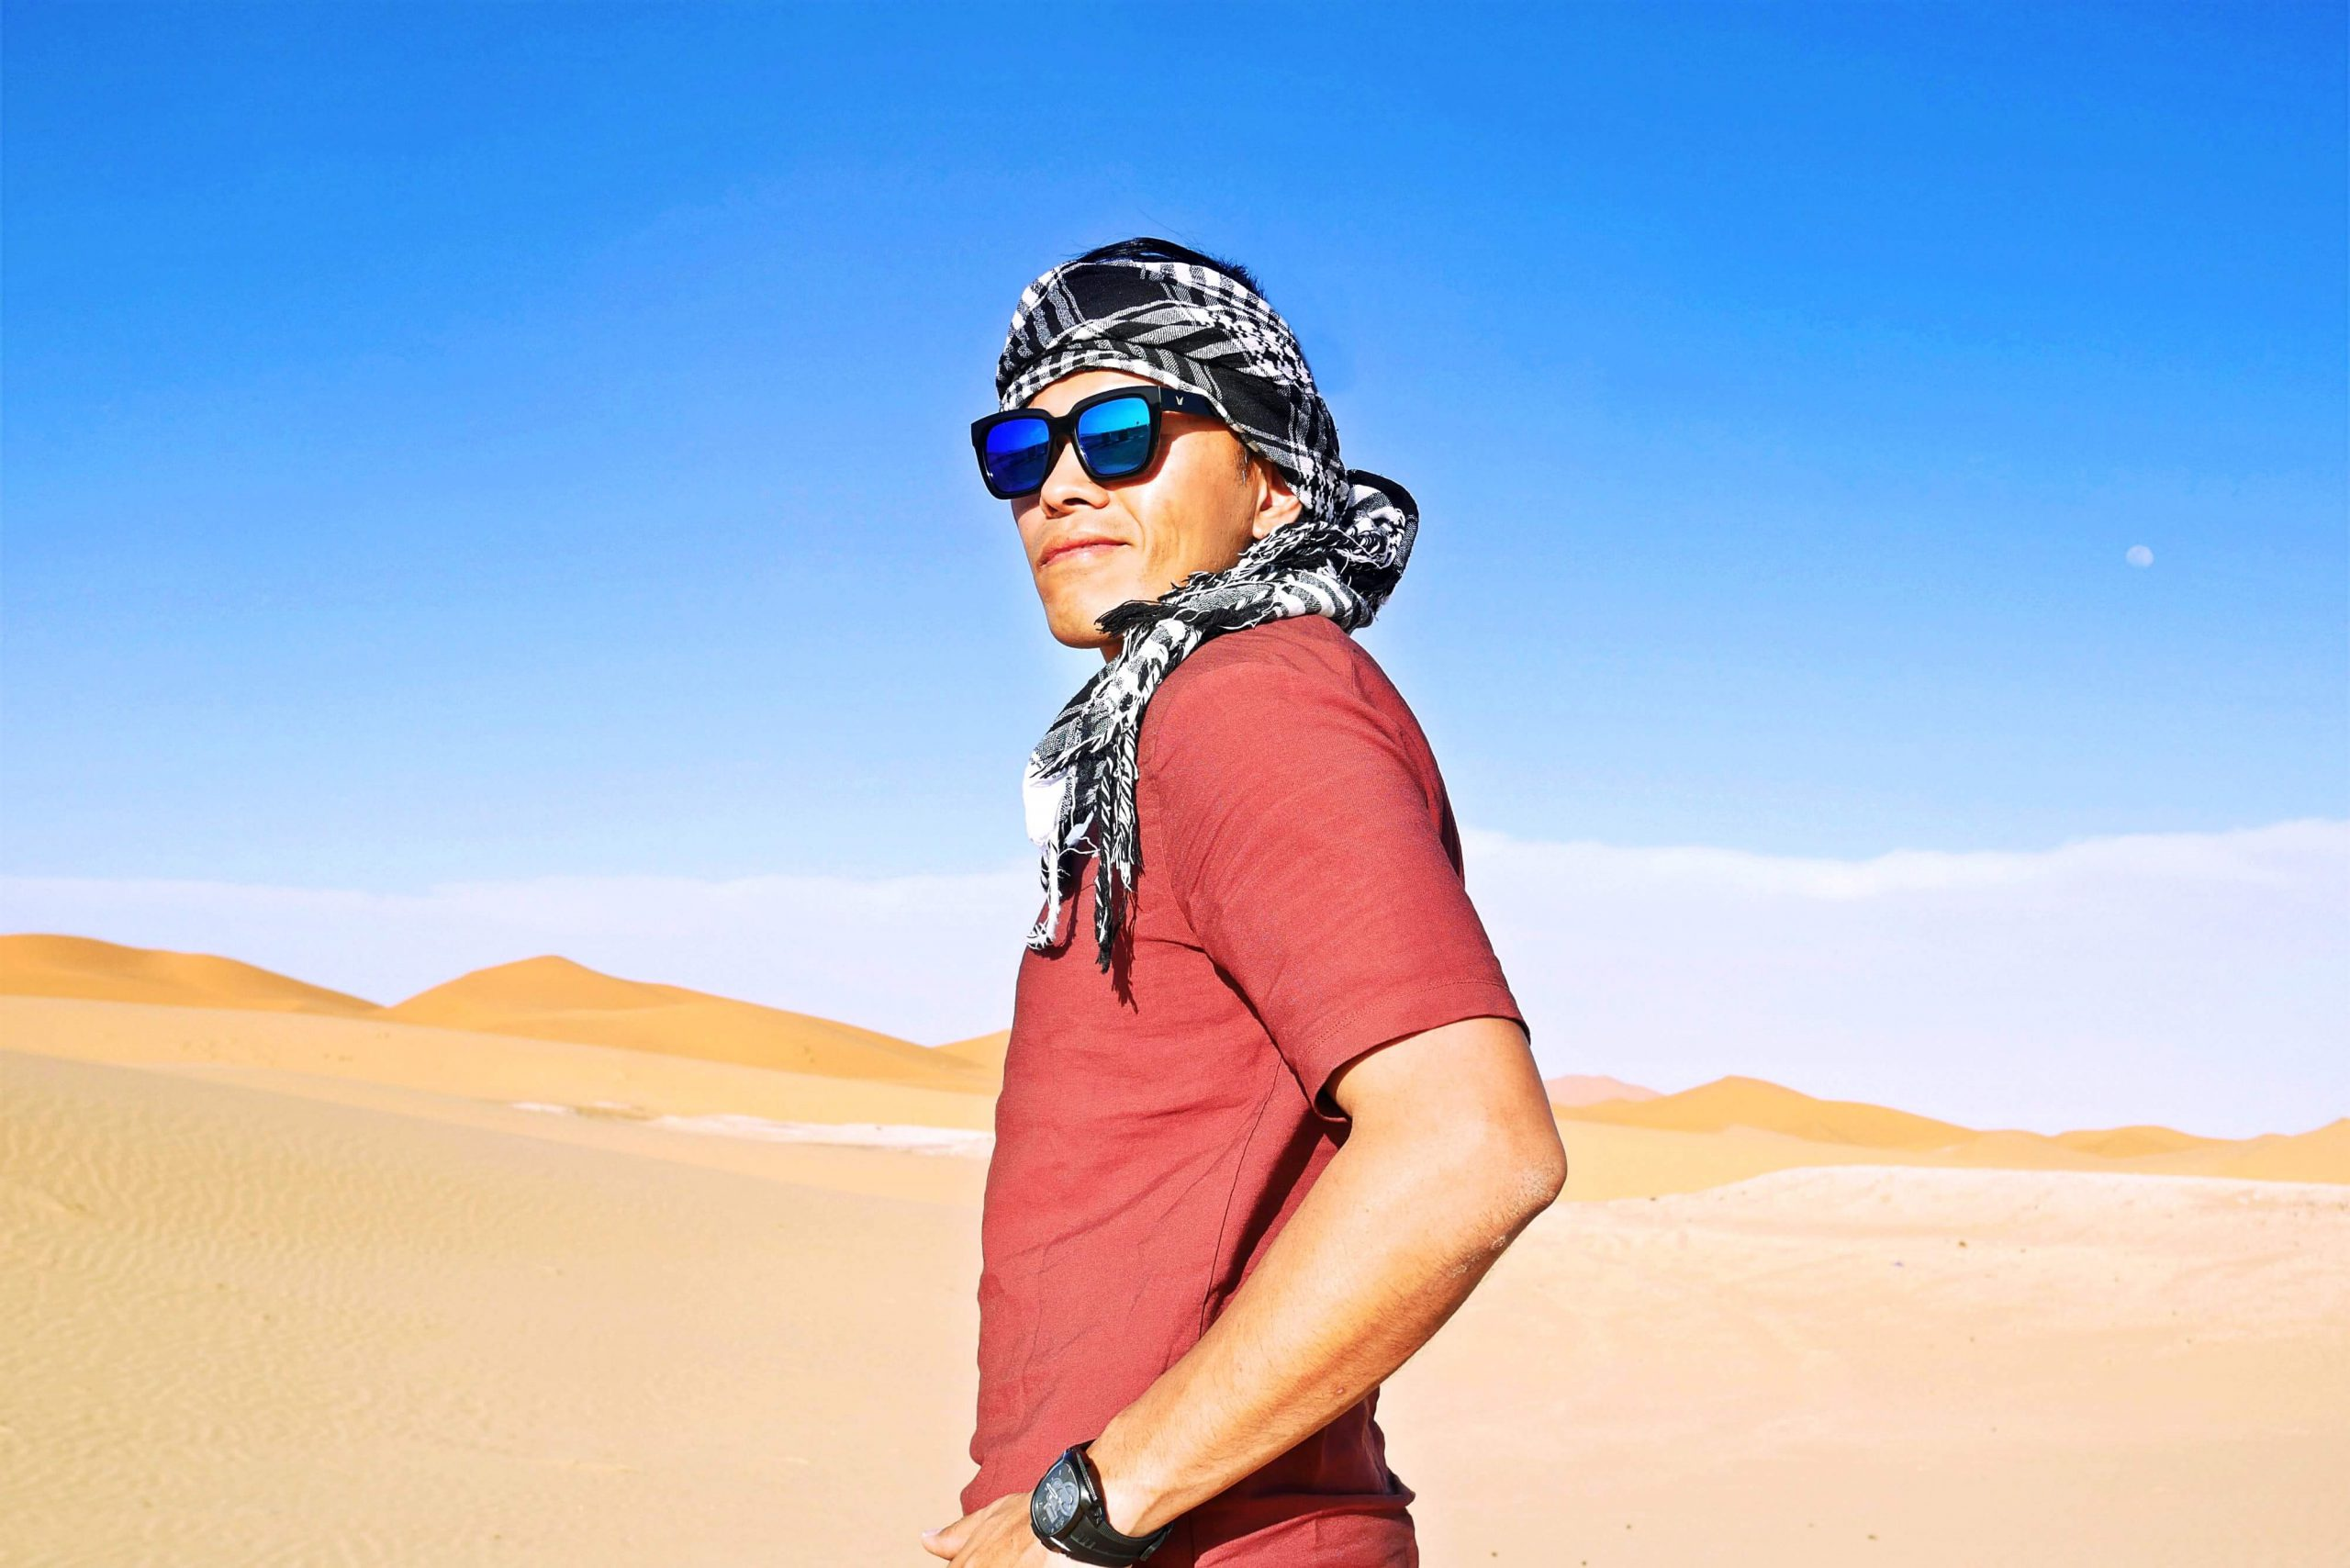 Sahara Desert Tour - Deserts of Morocco - Desert What To Wear